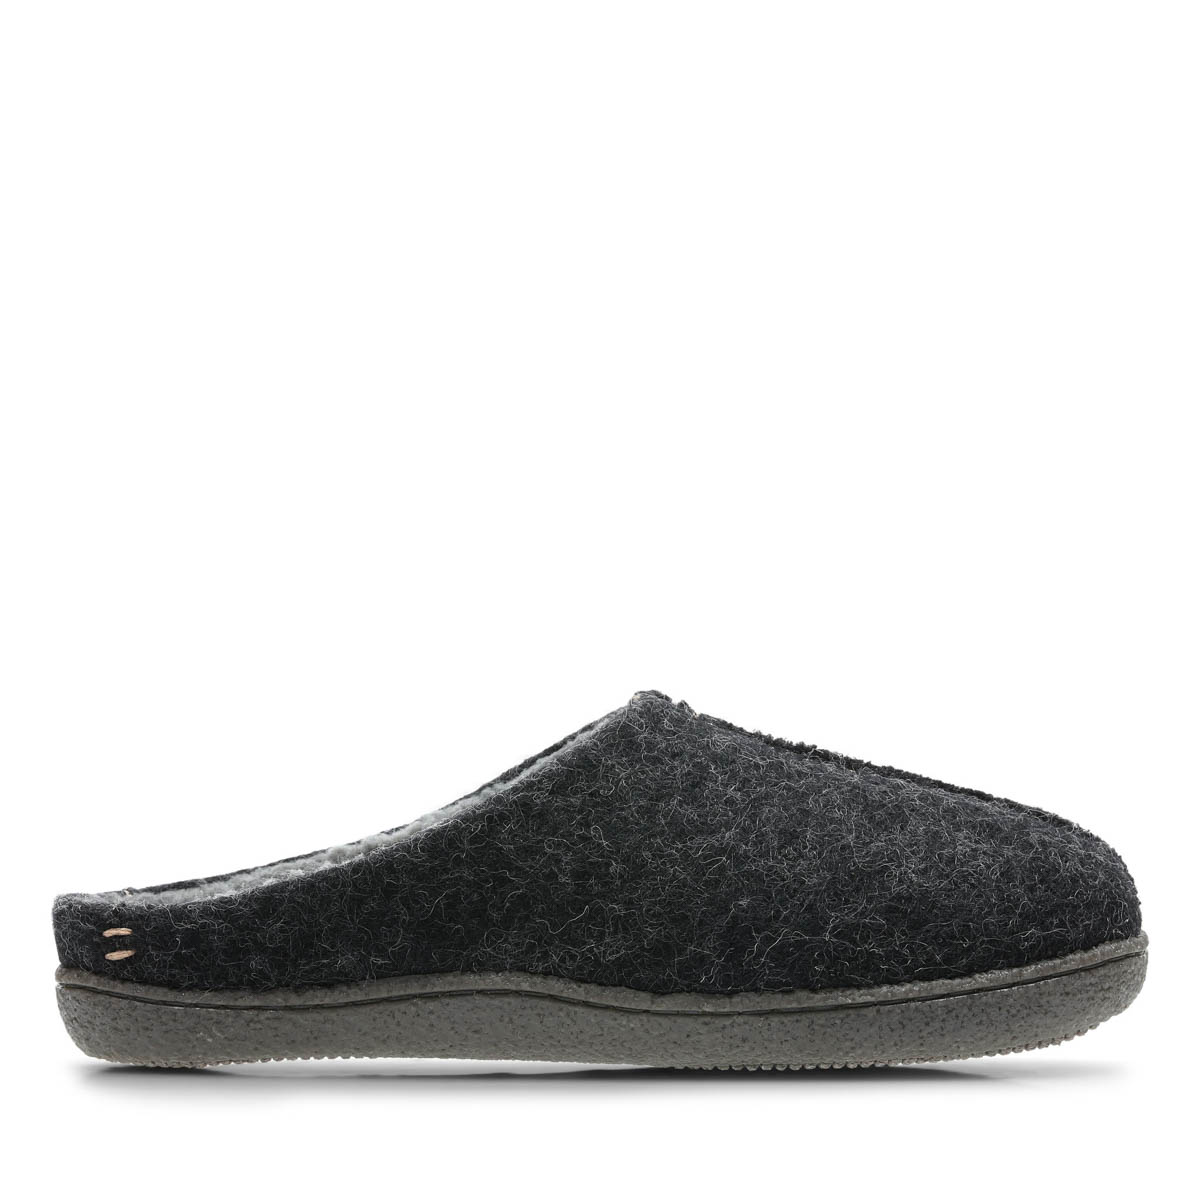 Mens Clarks Slippers Relaxed Style